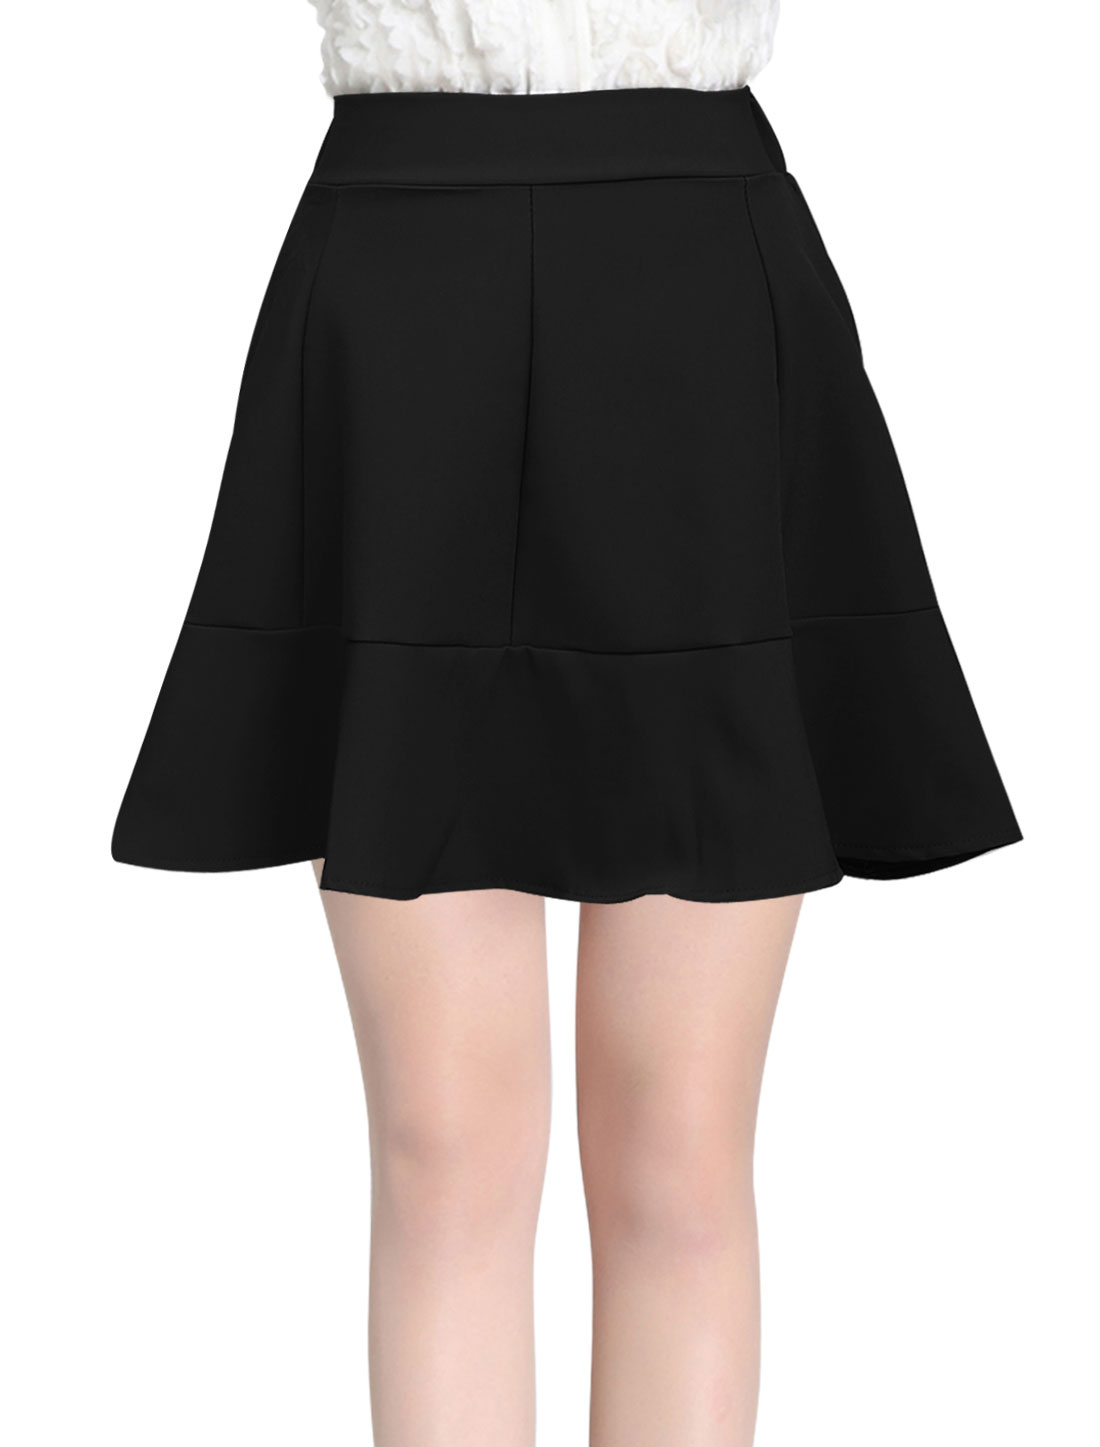 Ladies Elastic Waist Flouncing Hem Sweet Mini Skirt Black S